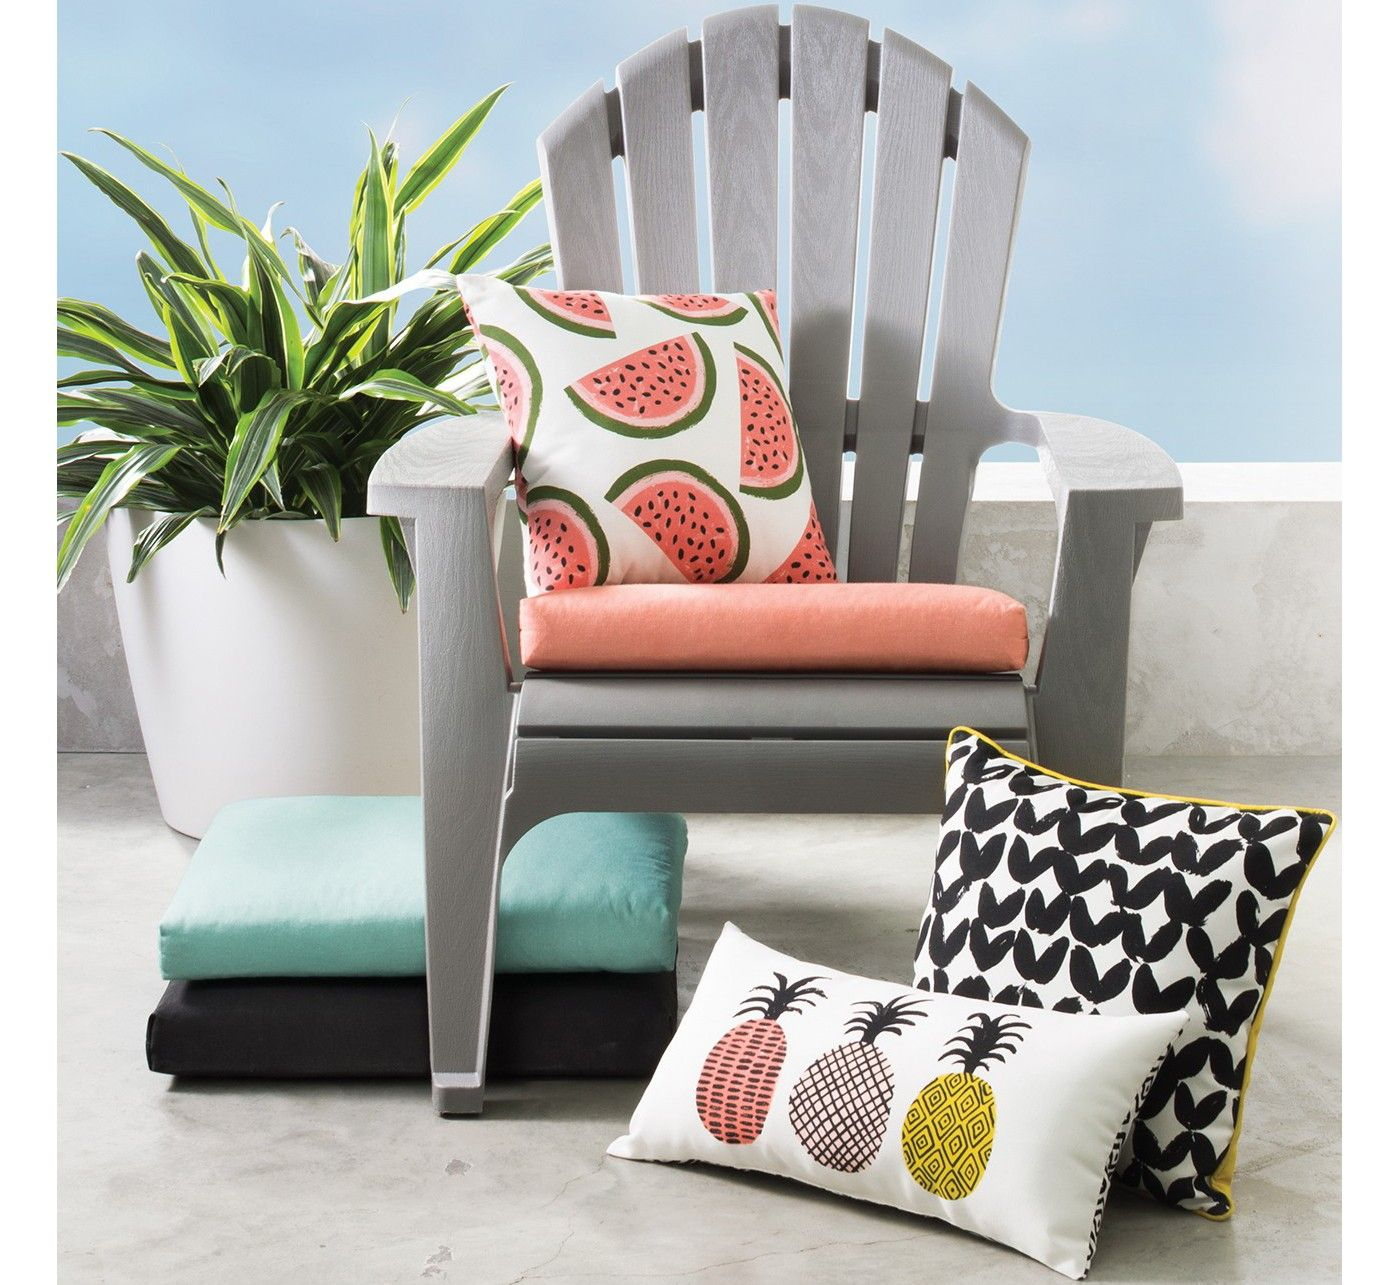 Outdoor Seat Cushion Turquoise Room Essentials